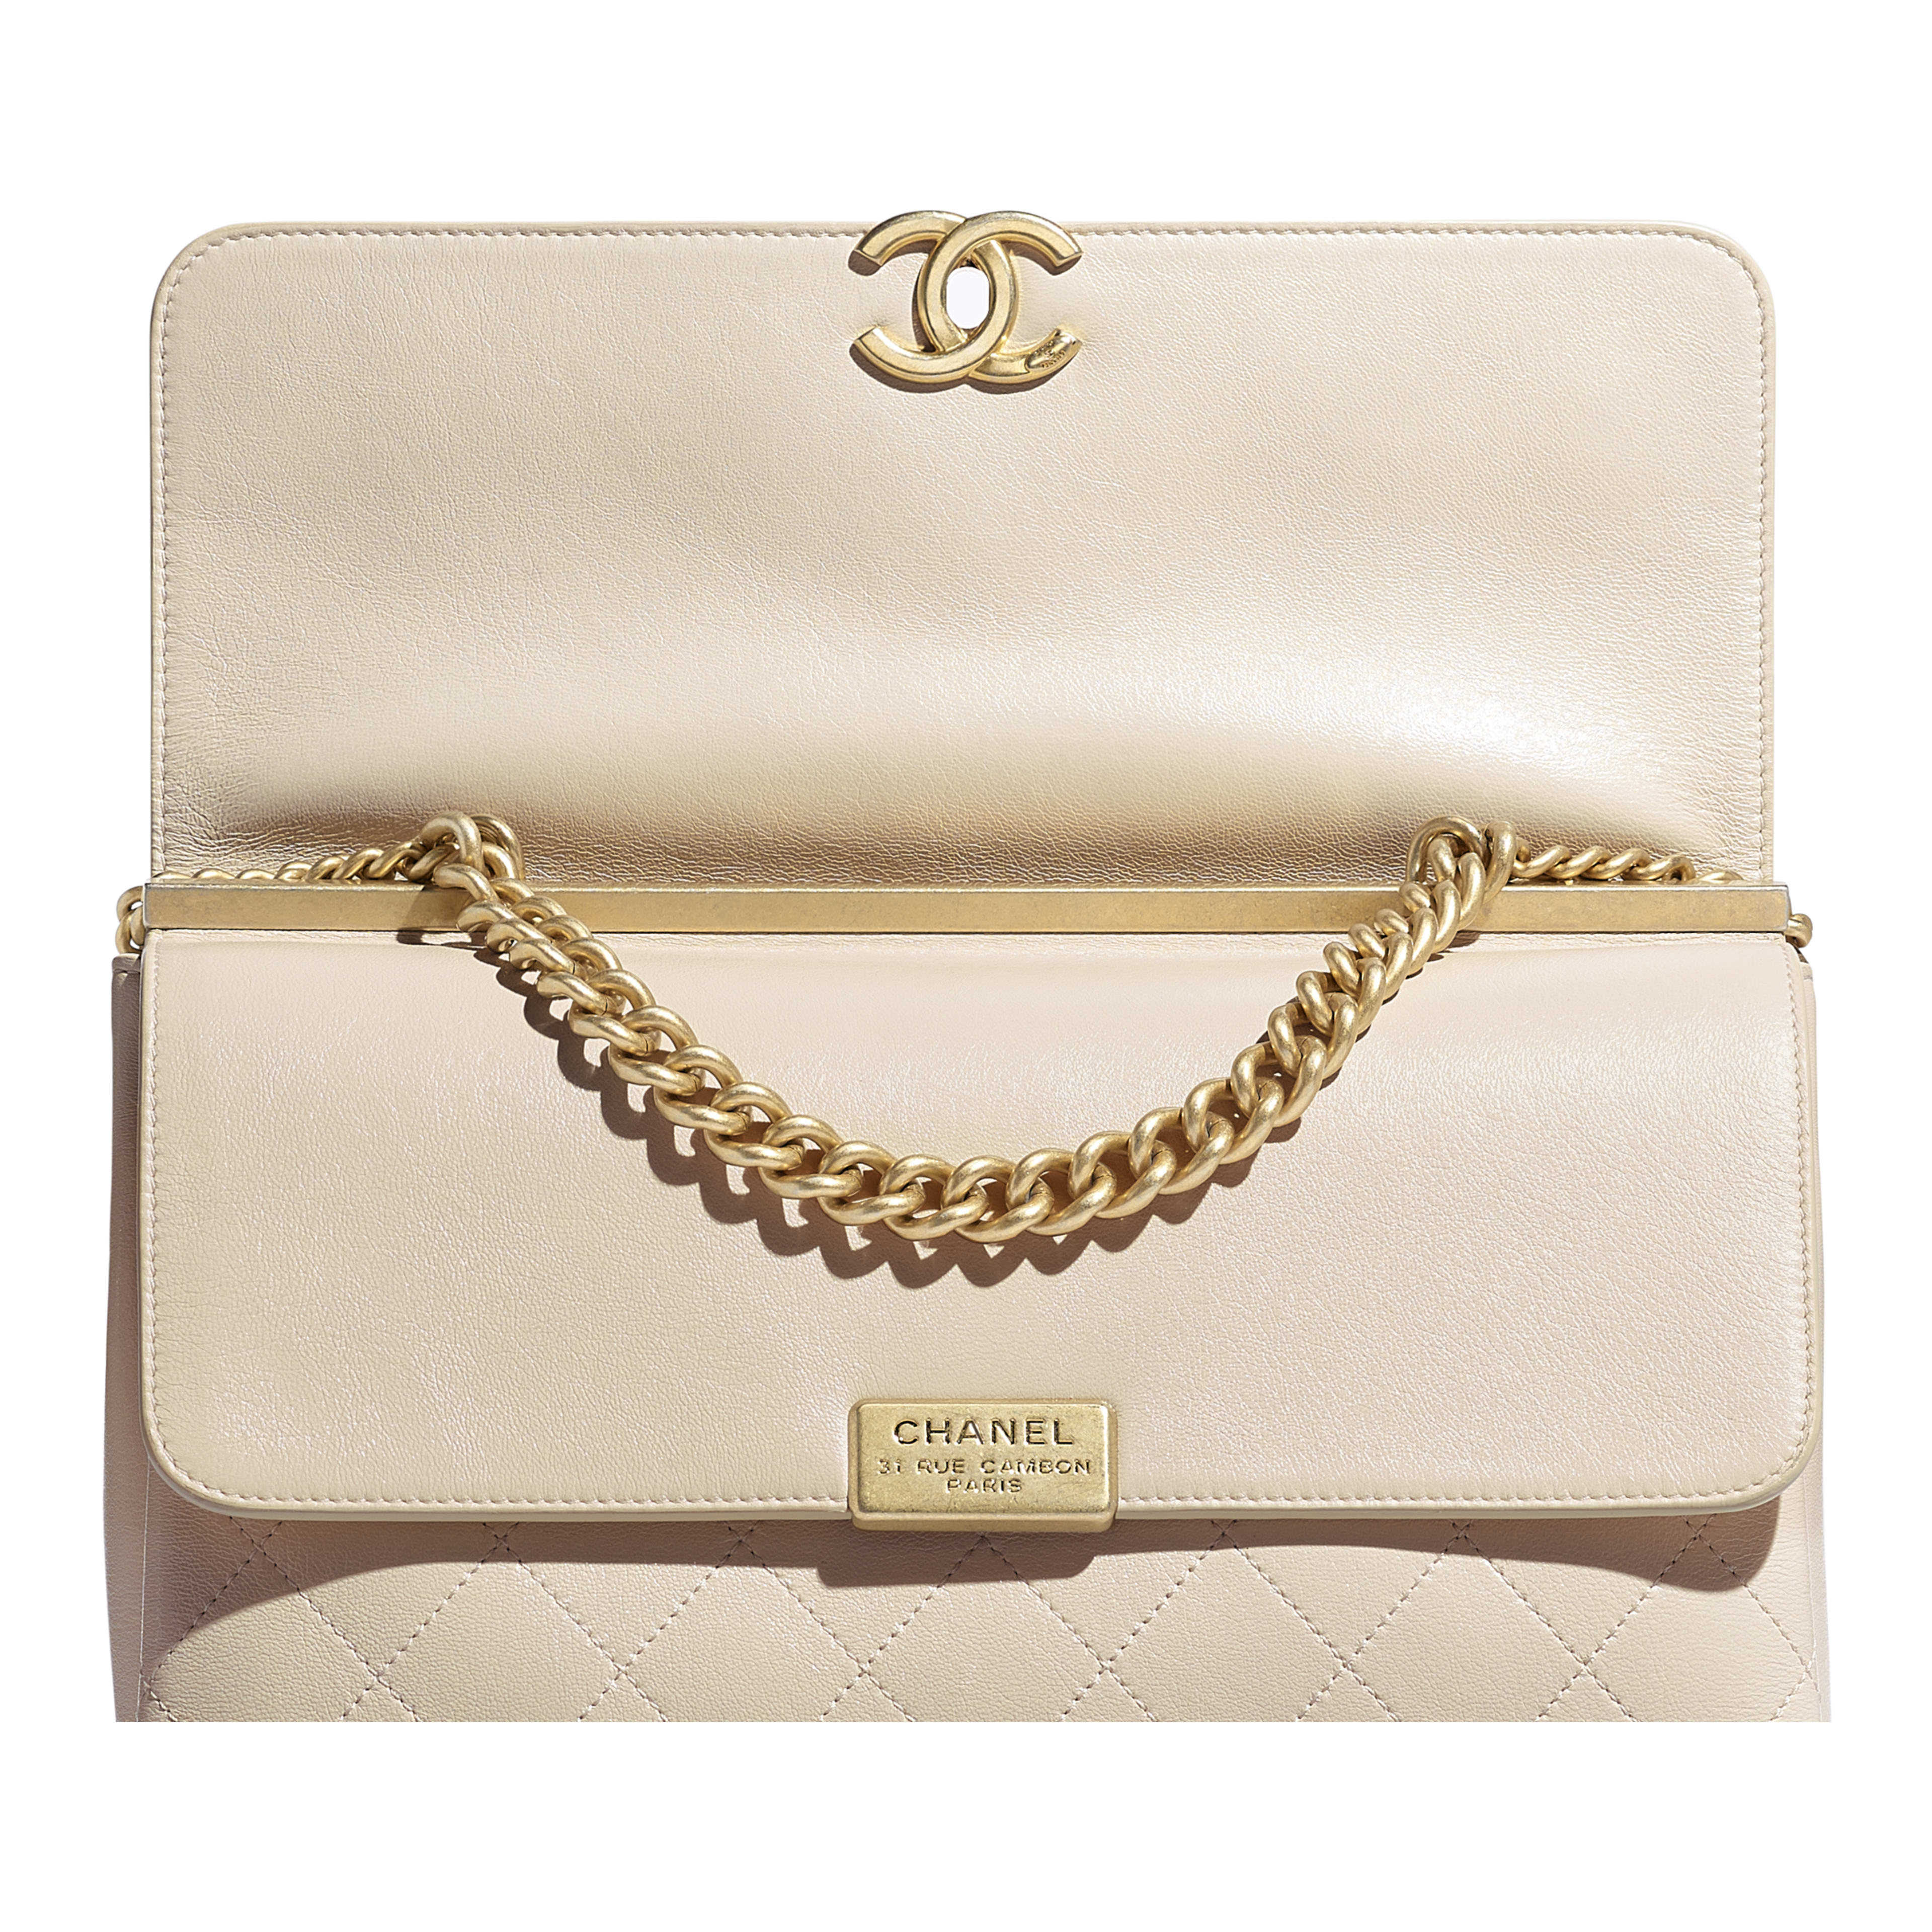 Flap Bag - Light Beige - Lambskin - Extra view - see full sized version